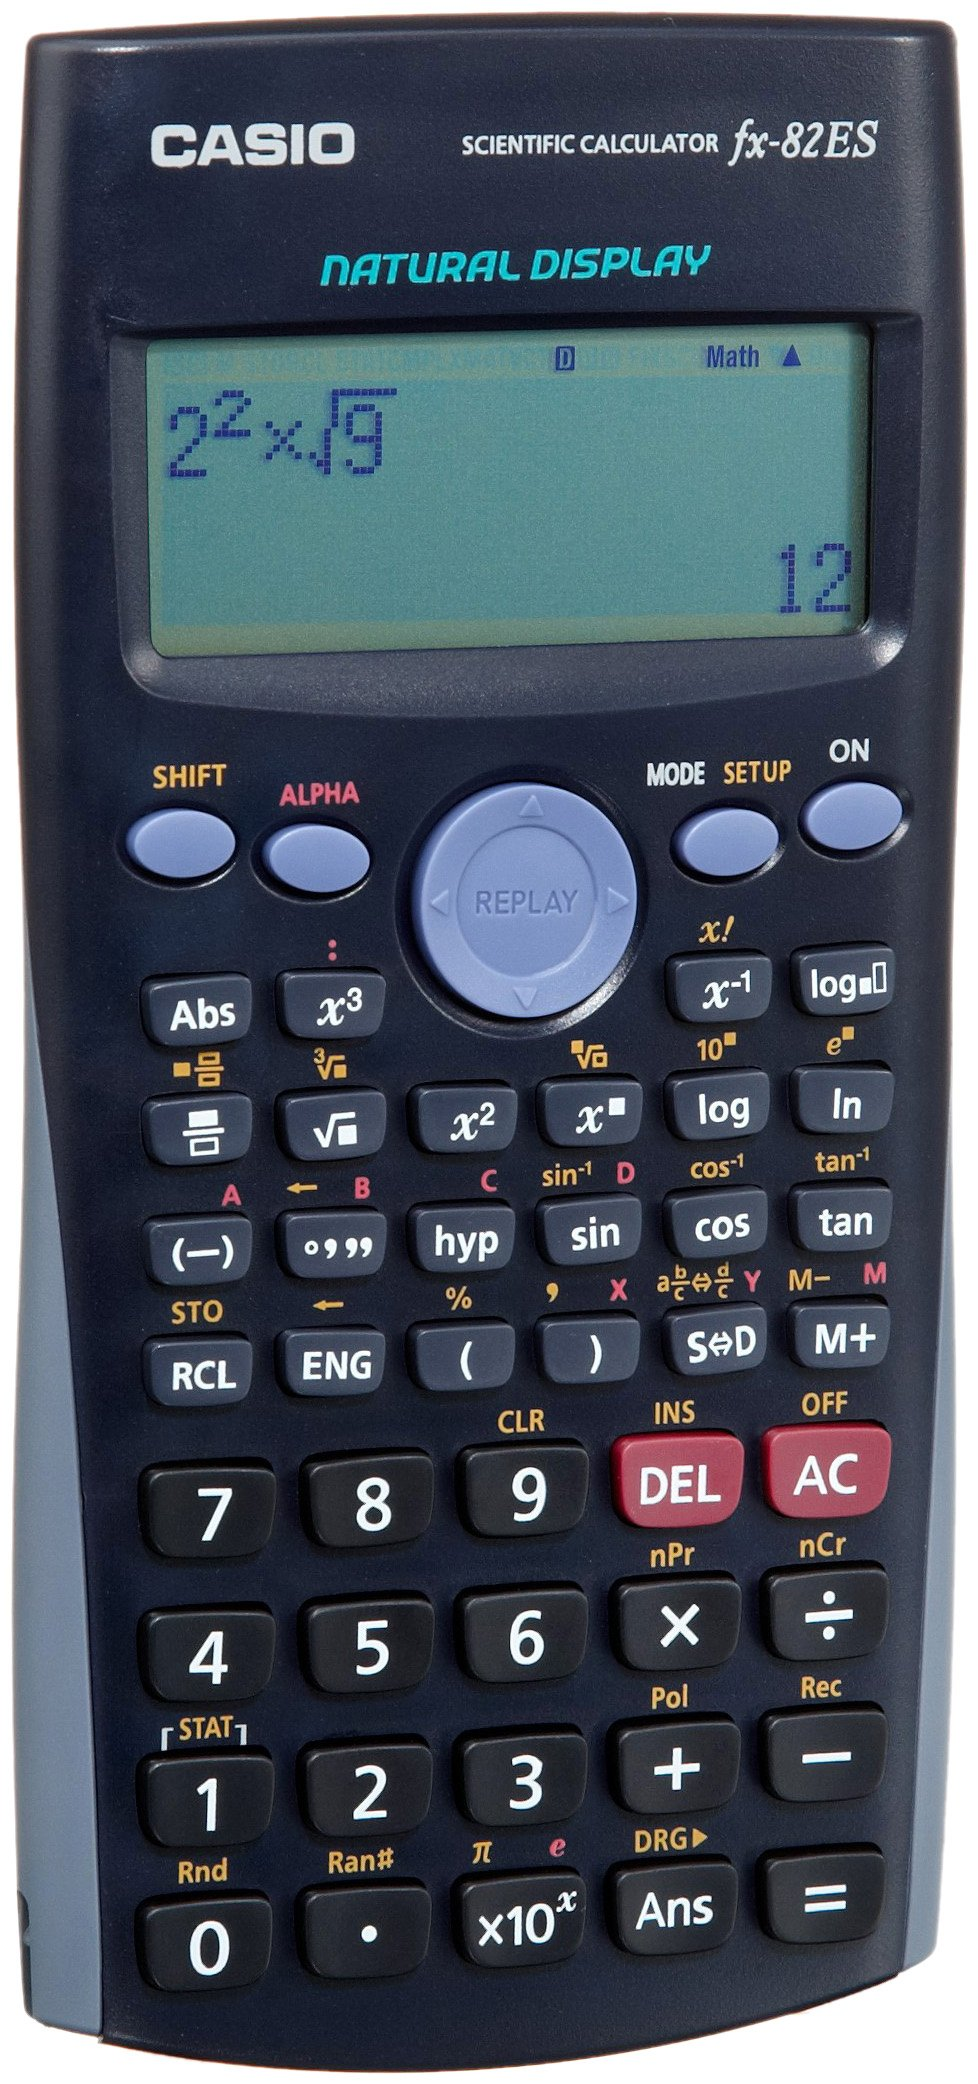 Casio Fx-82es Natural Textbook Display Scientific Calculations Calculator with 252 Functions